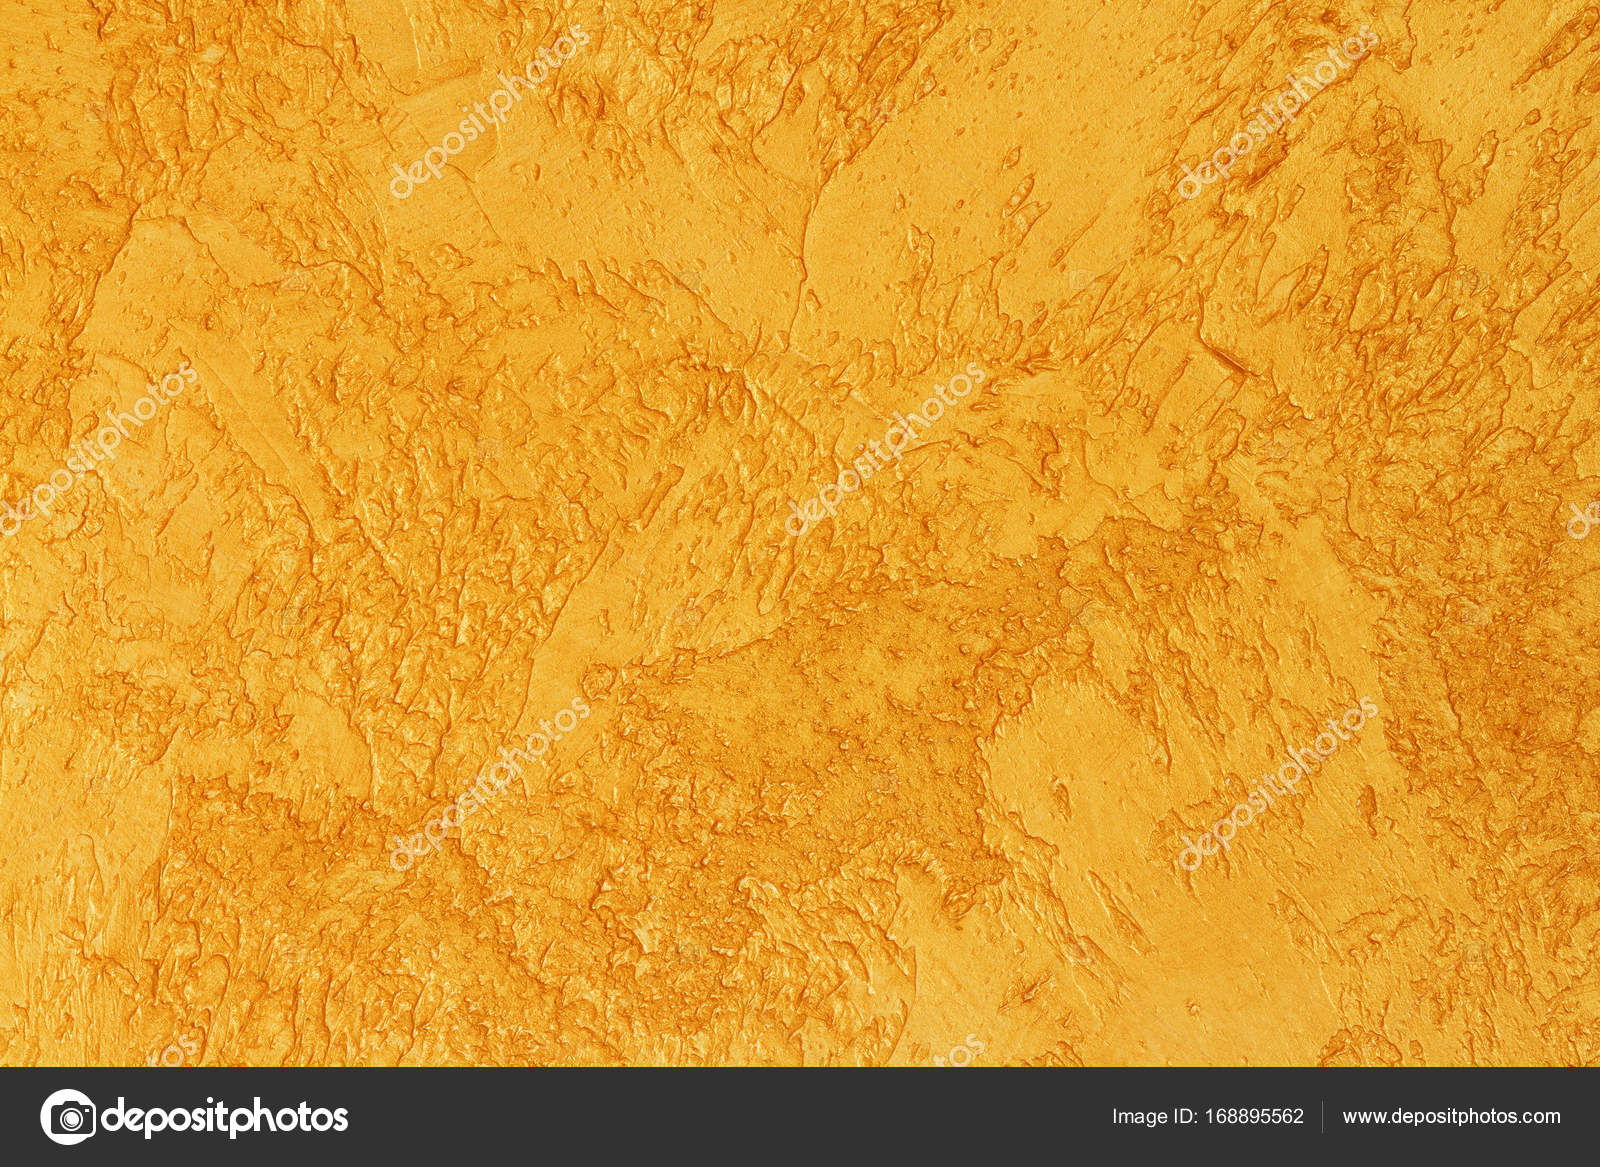 Background of golden textured surface. Golden texture for design and ...